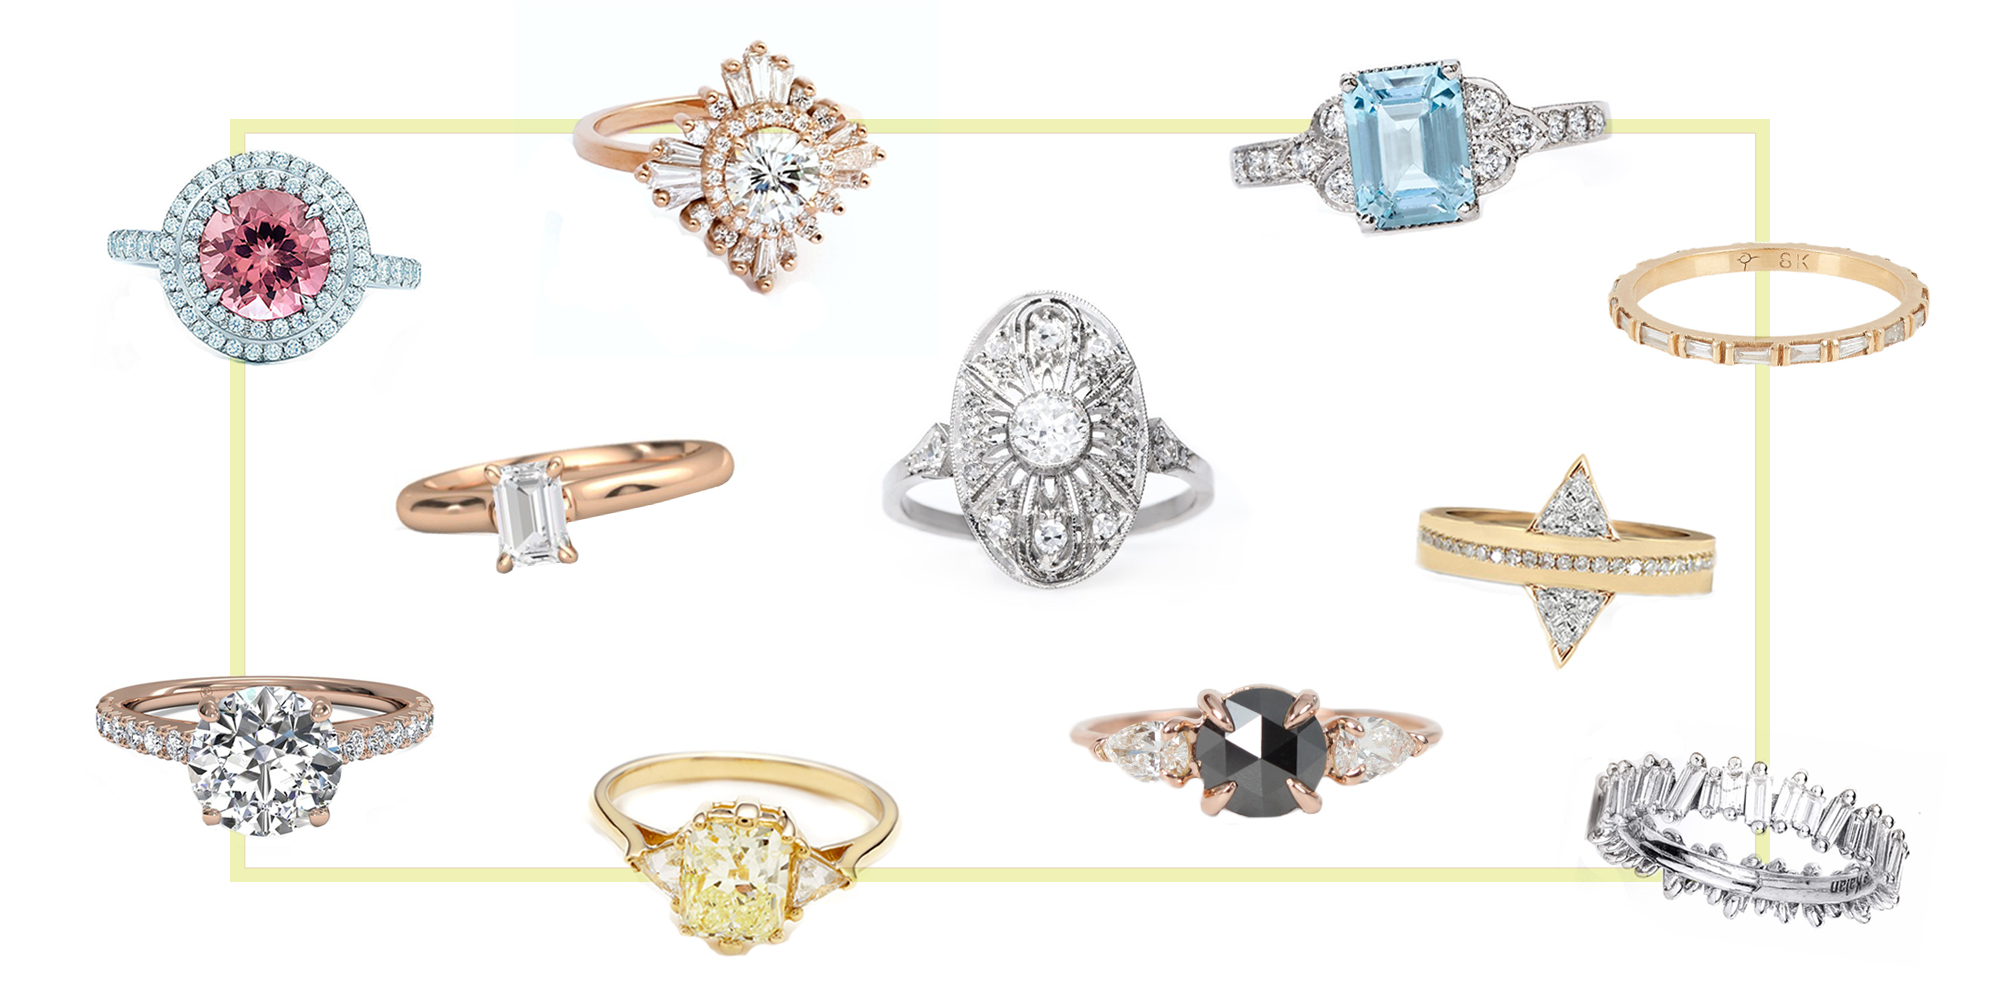 15 Best New Engagement Ring Styles In 2017